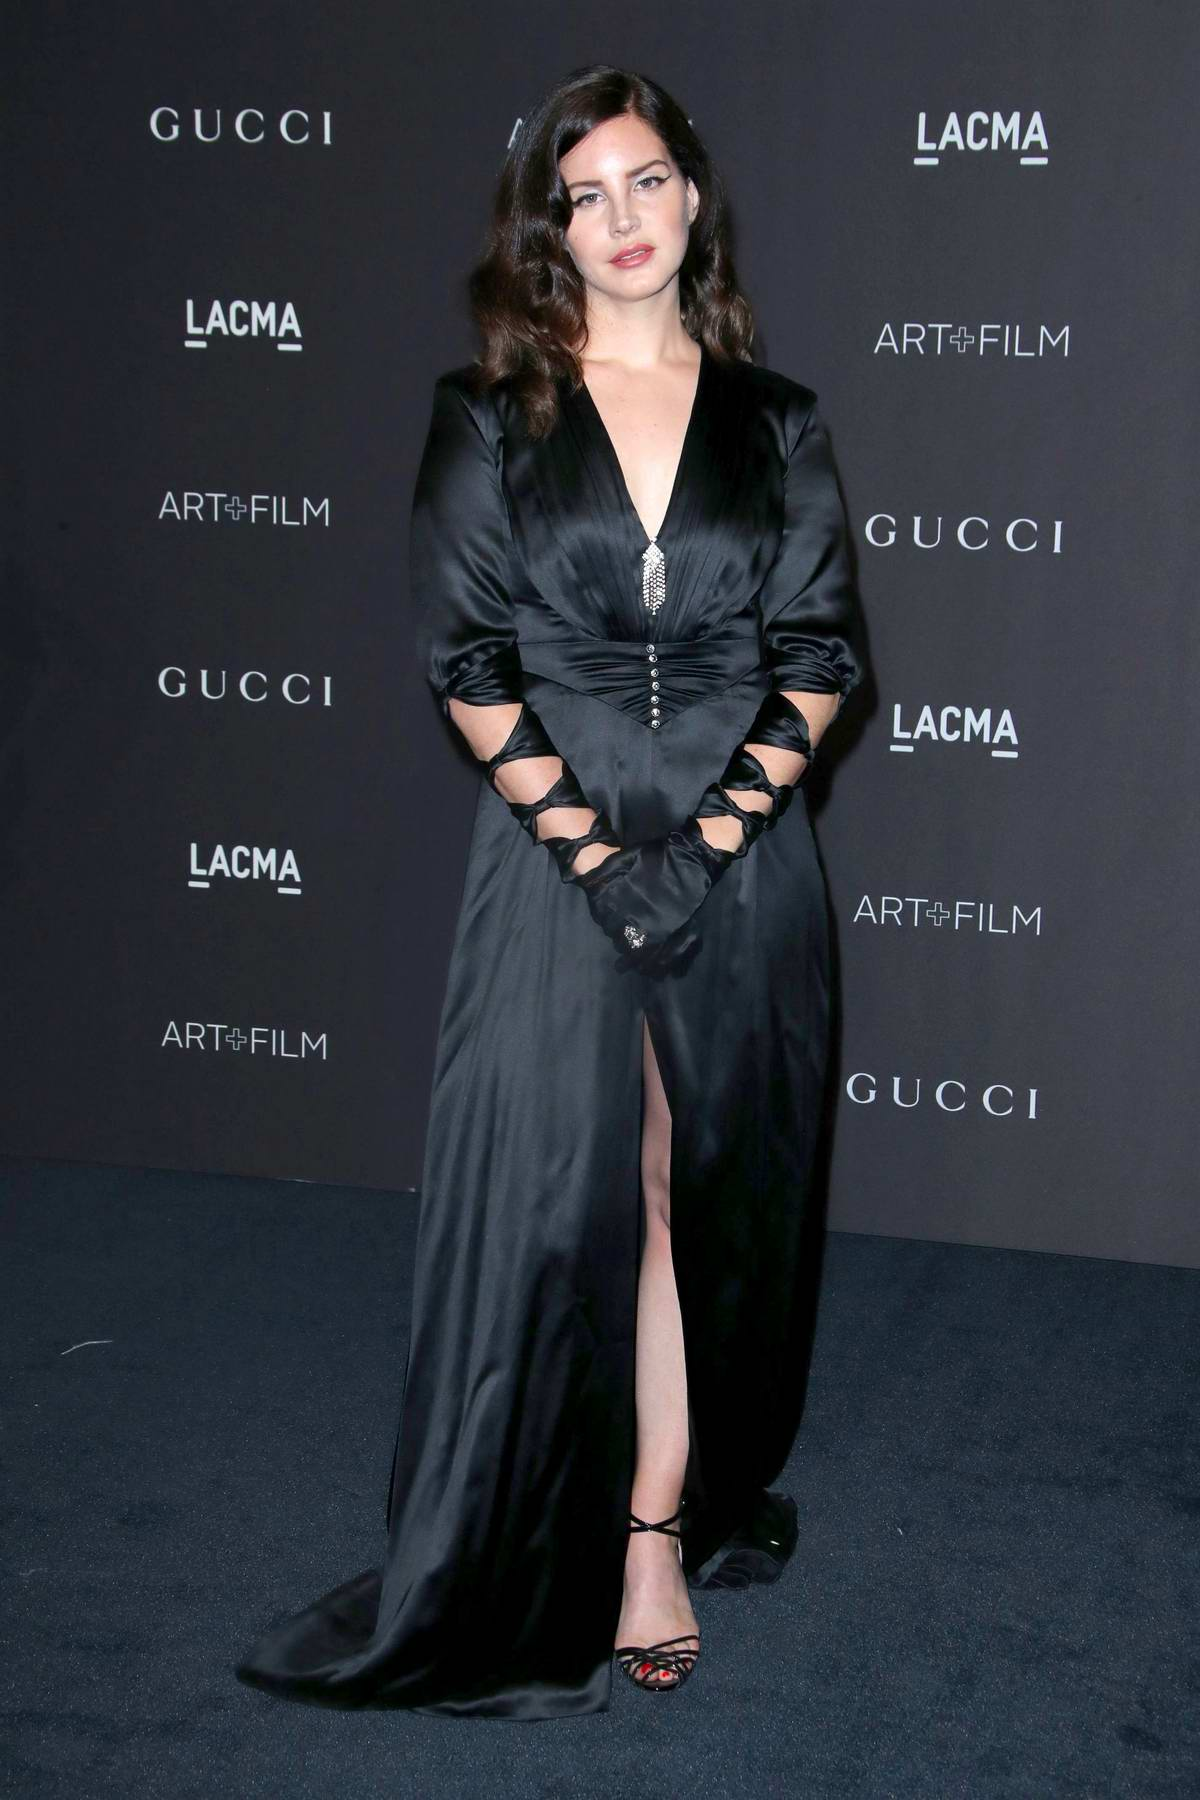 Lana Del Rey attends the 2018 LACMA Art + Film Gala in Los Angeles